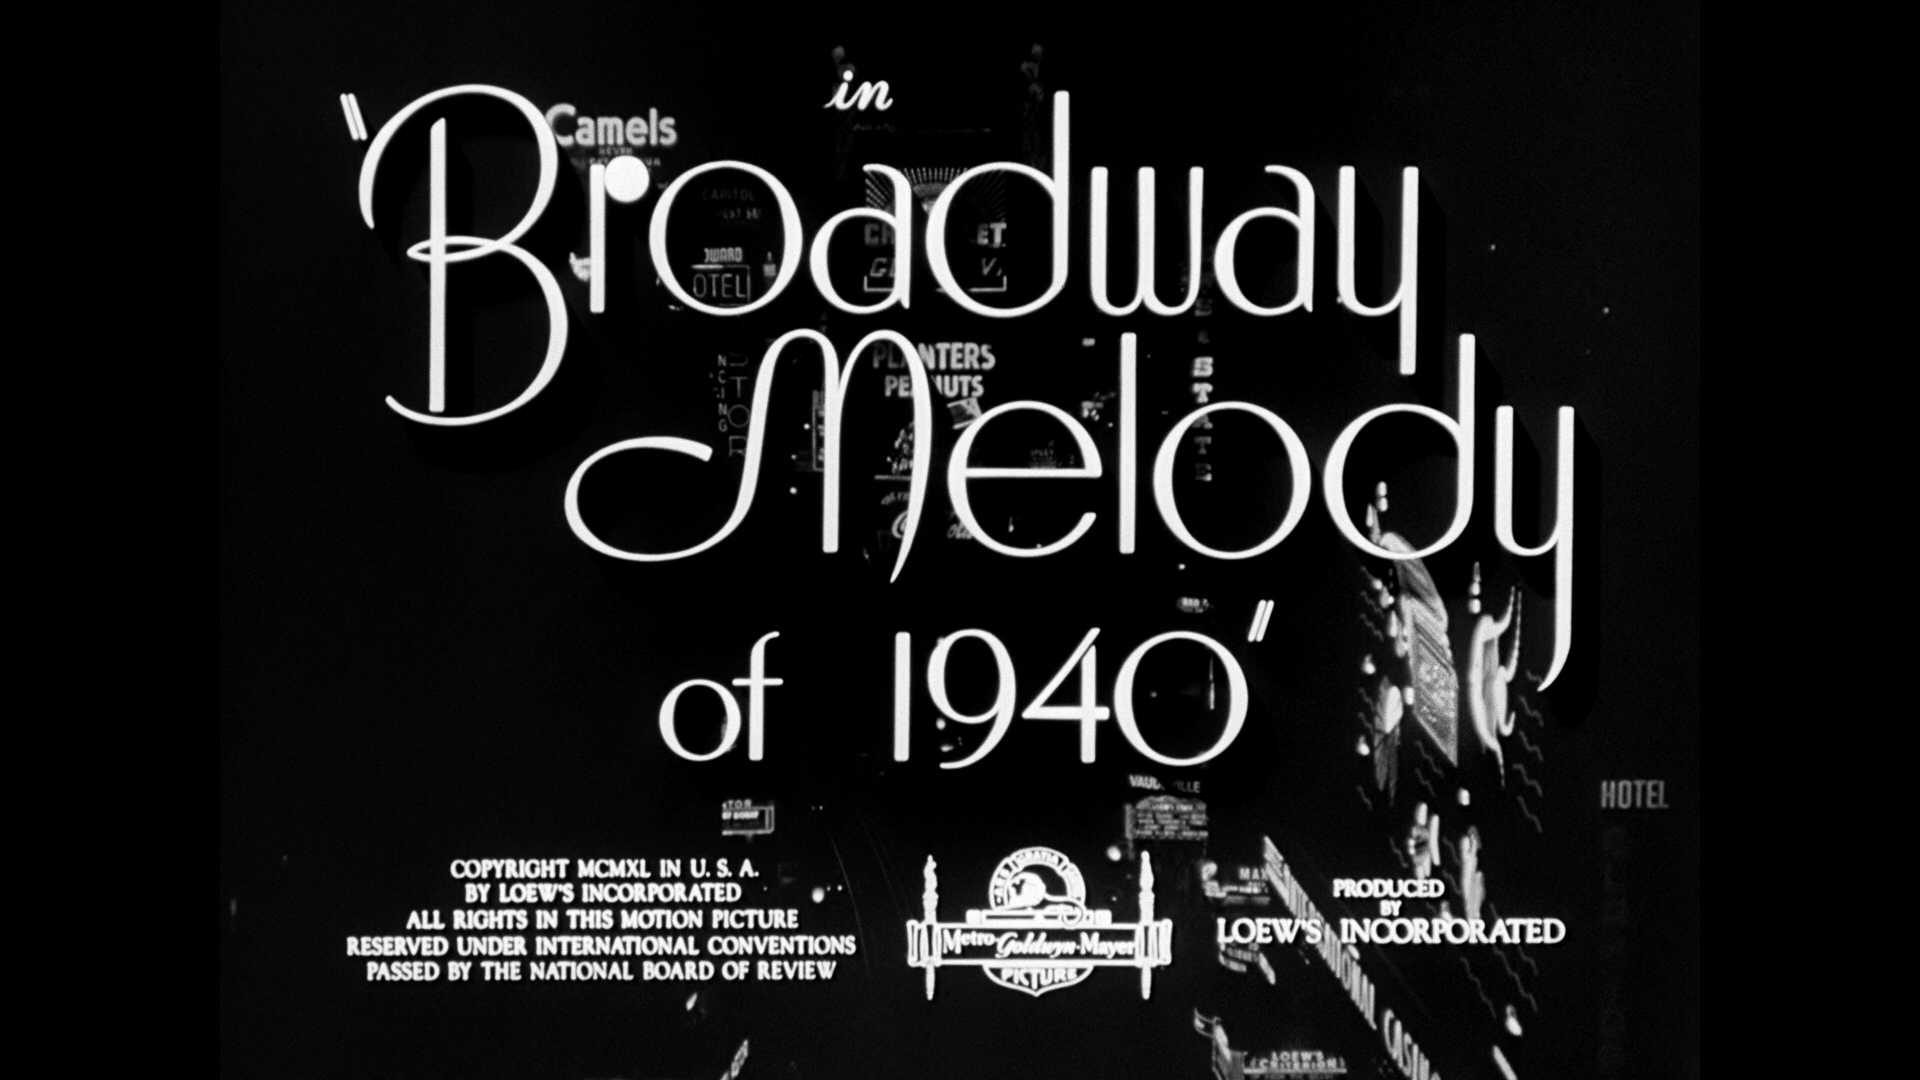 broadway melody of 1940 title